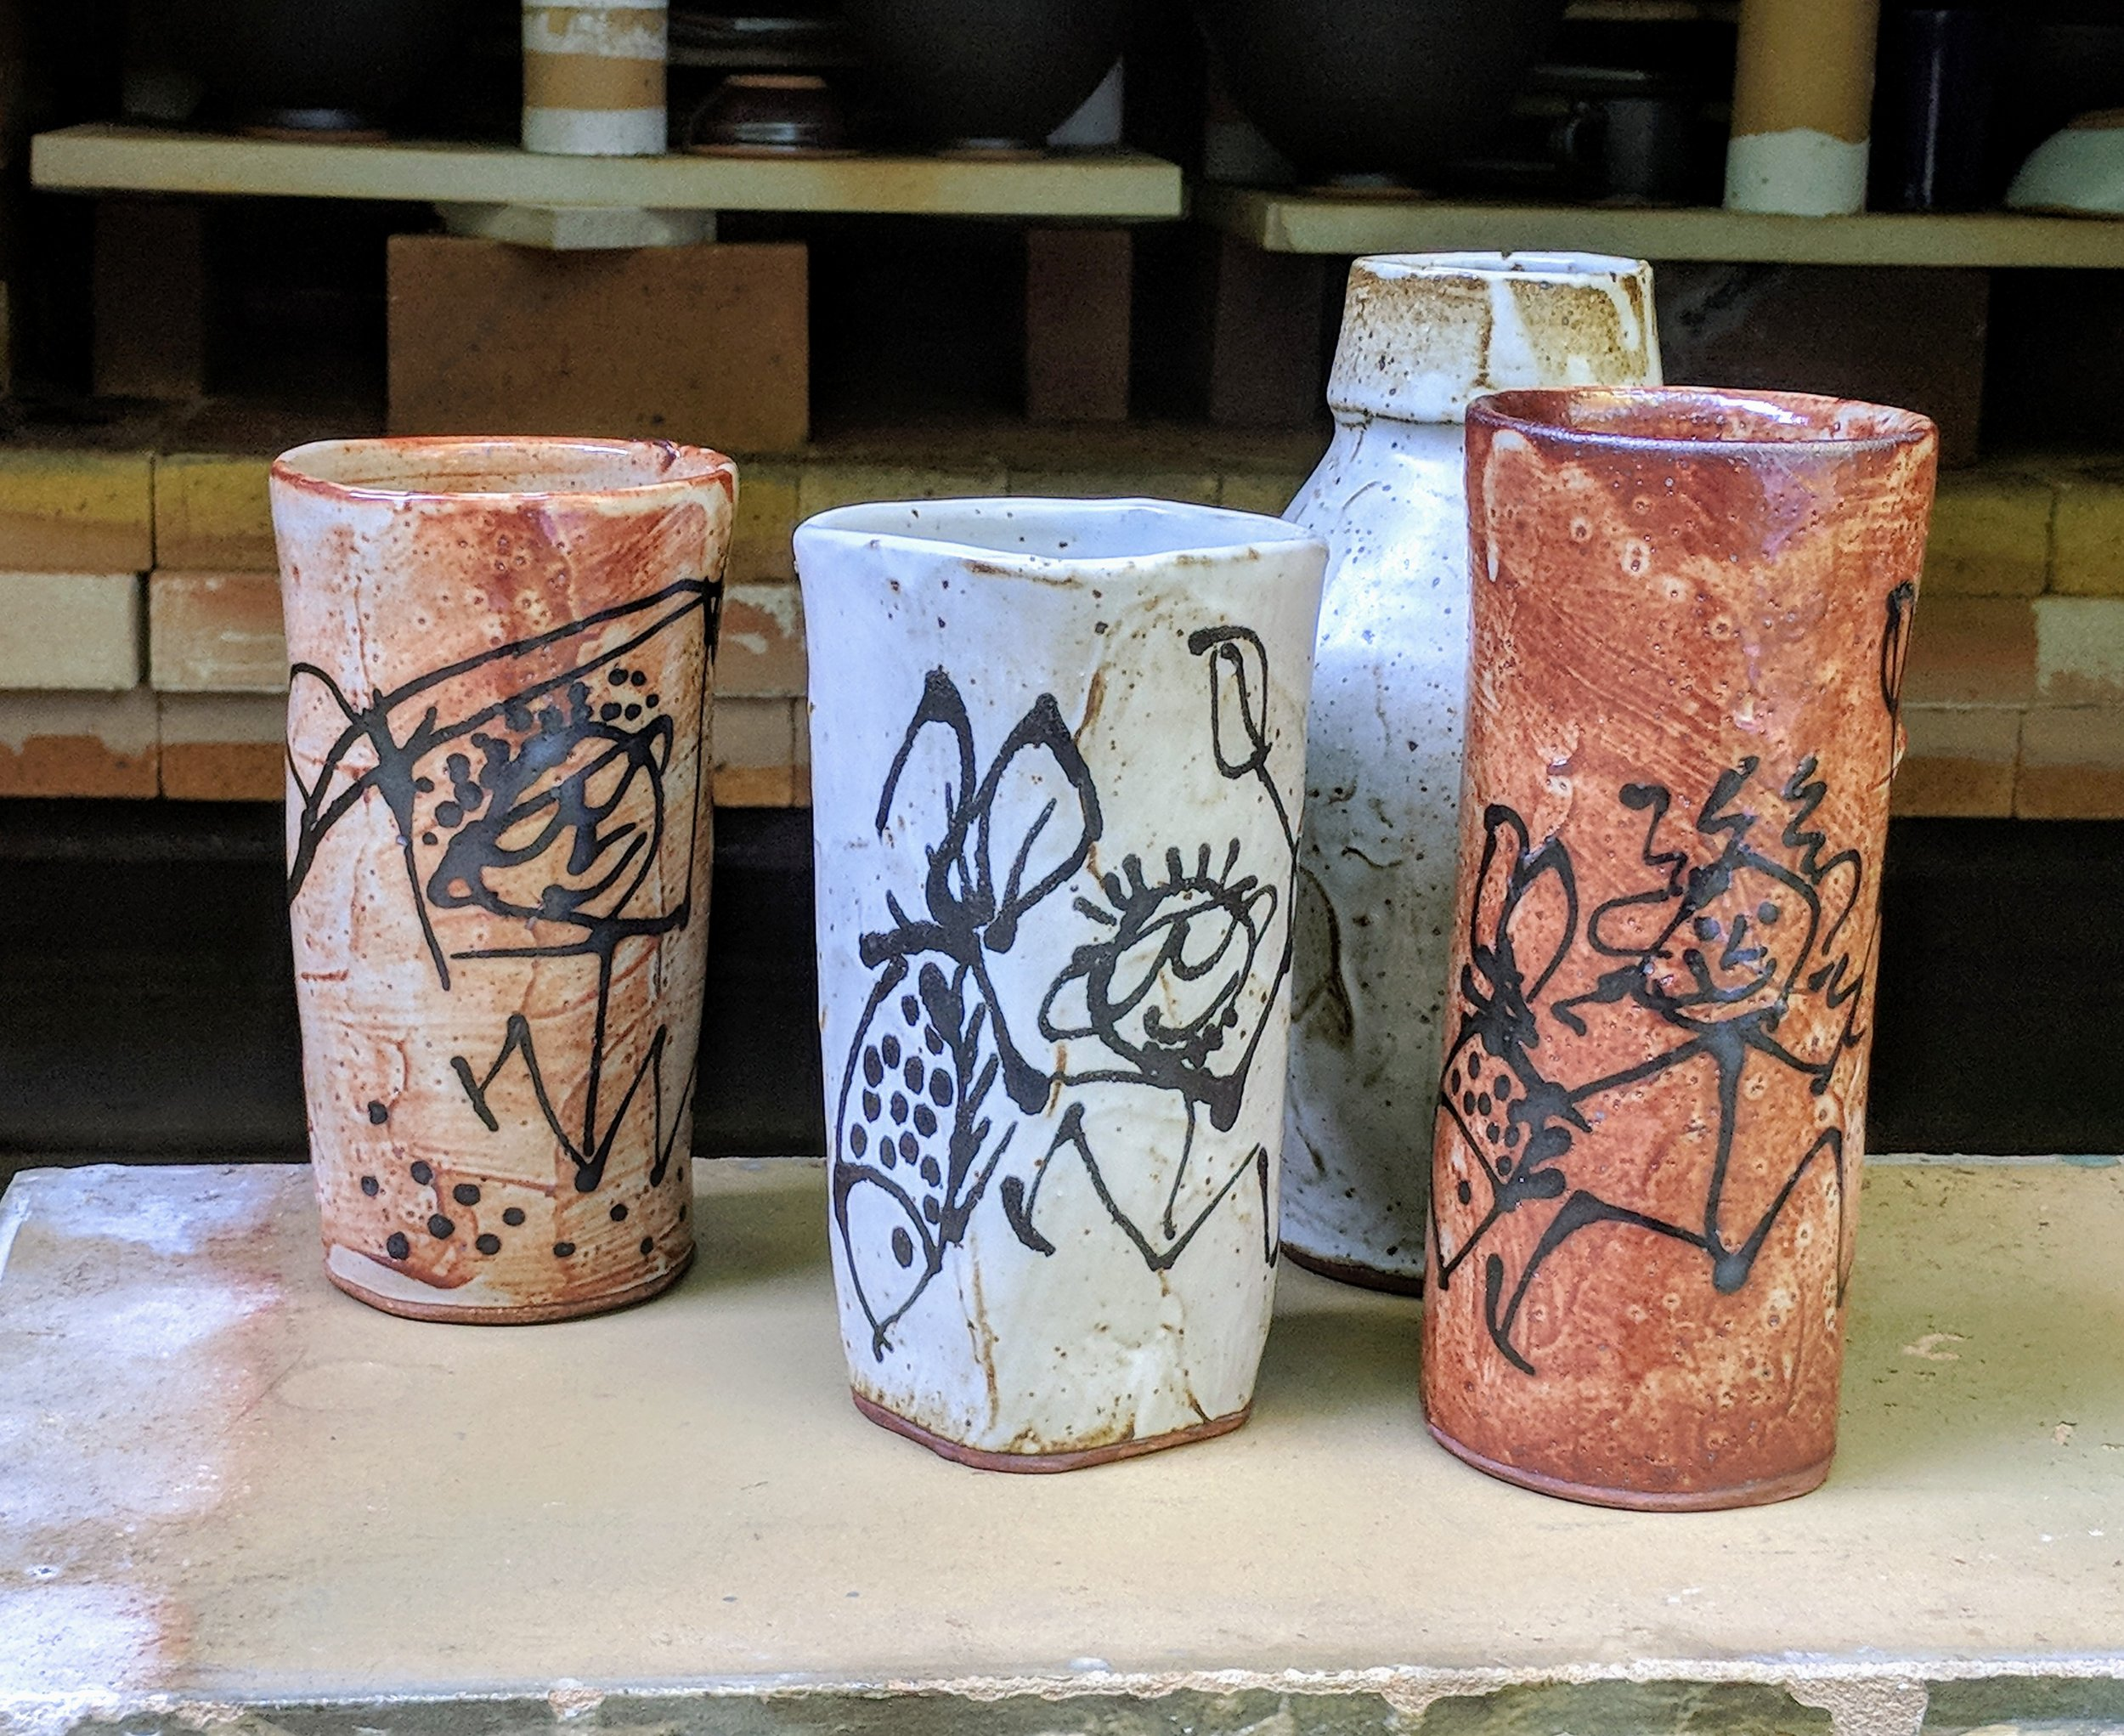 whimsical pots made with Darkstar wild clay